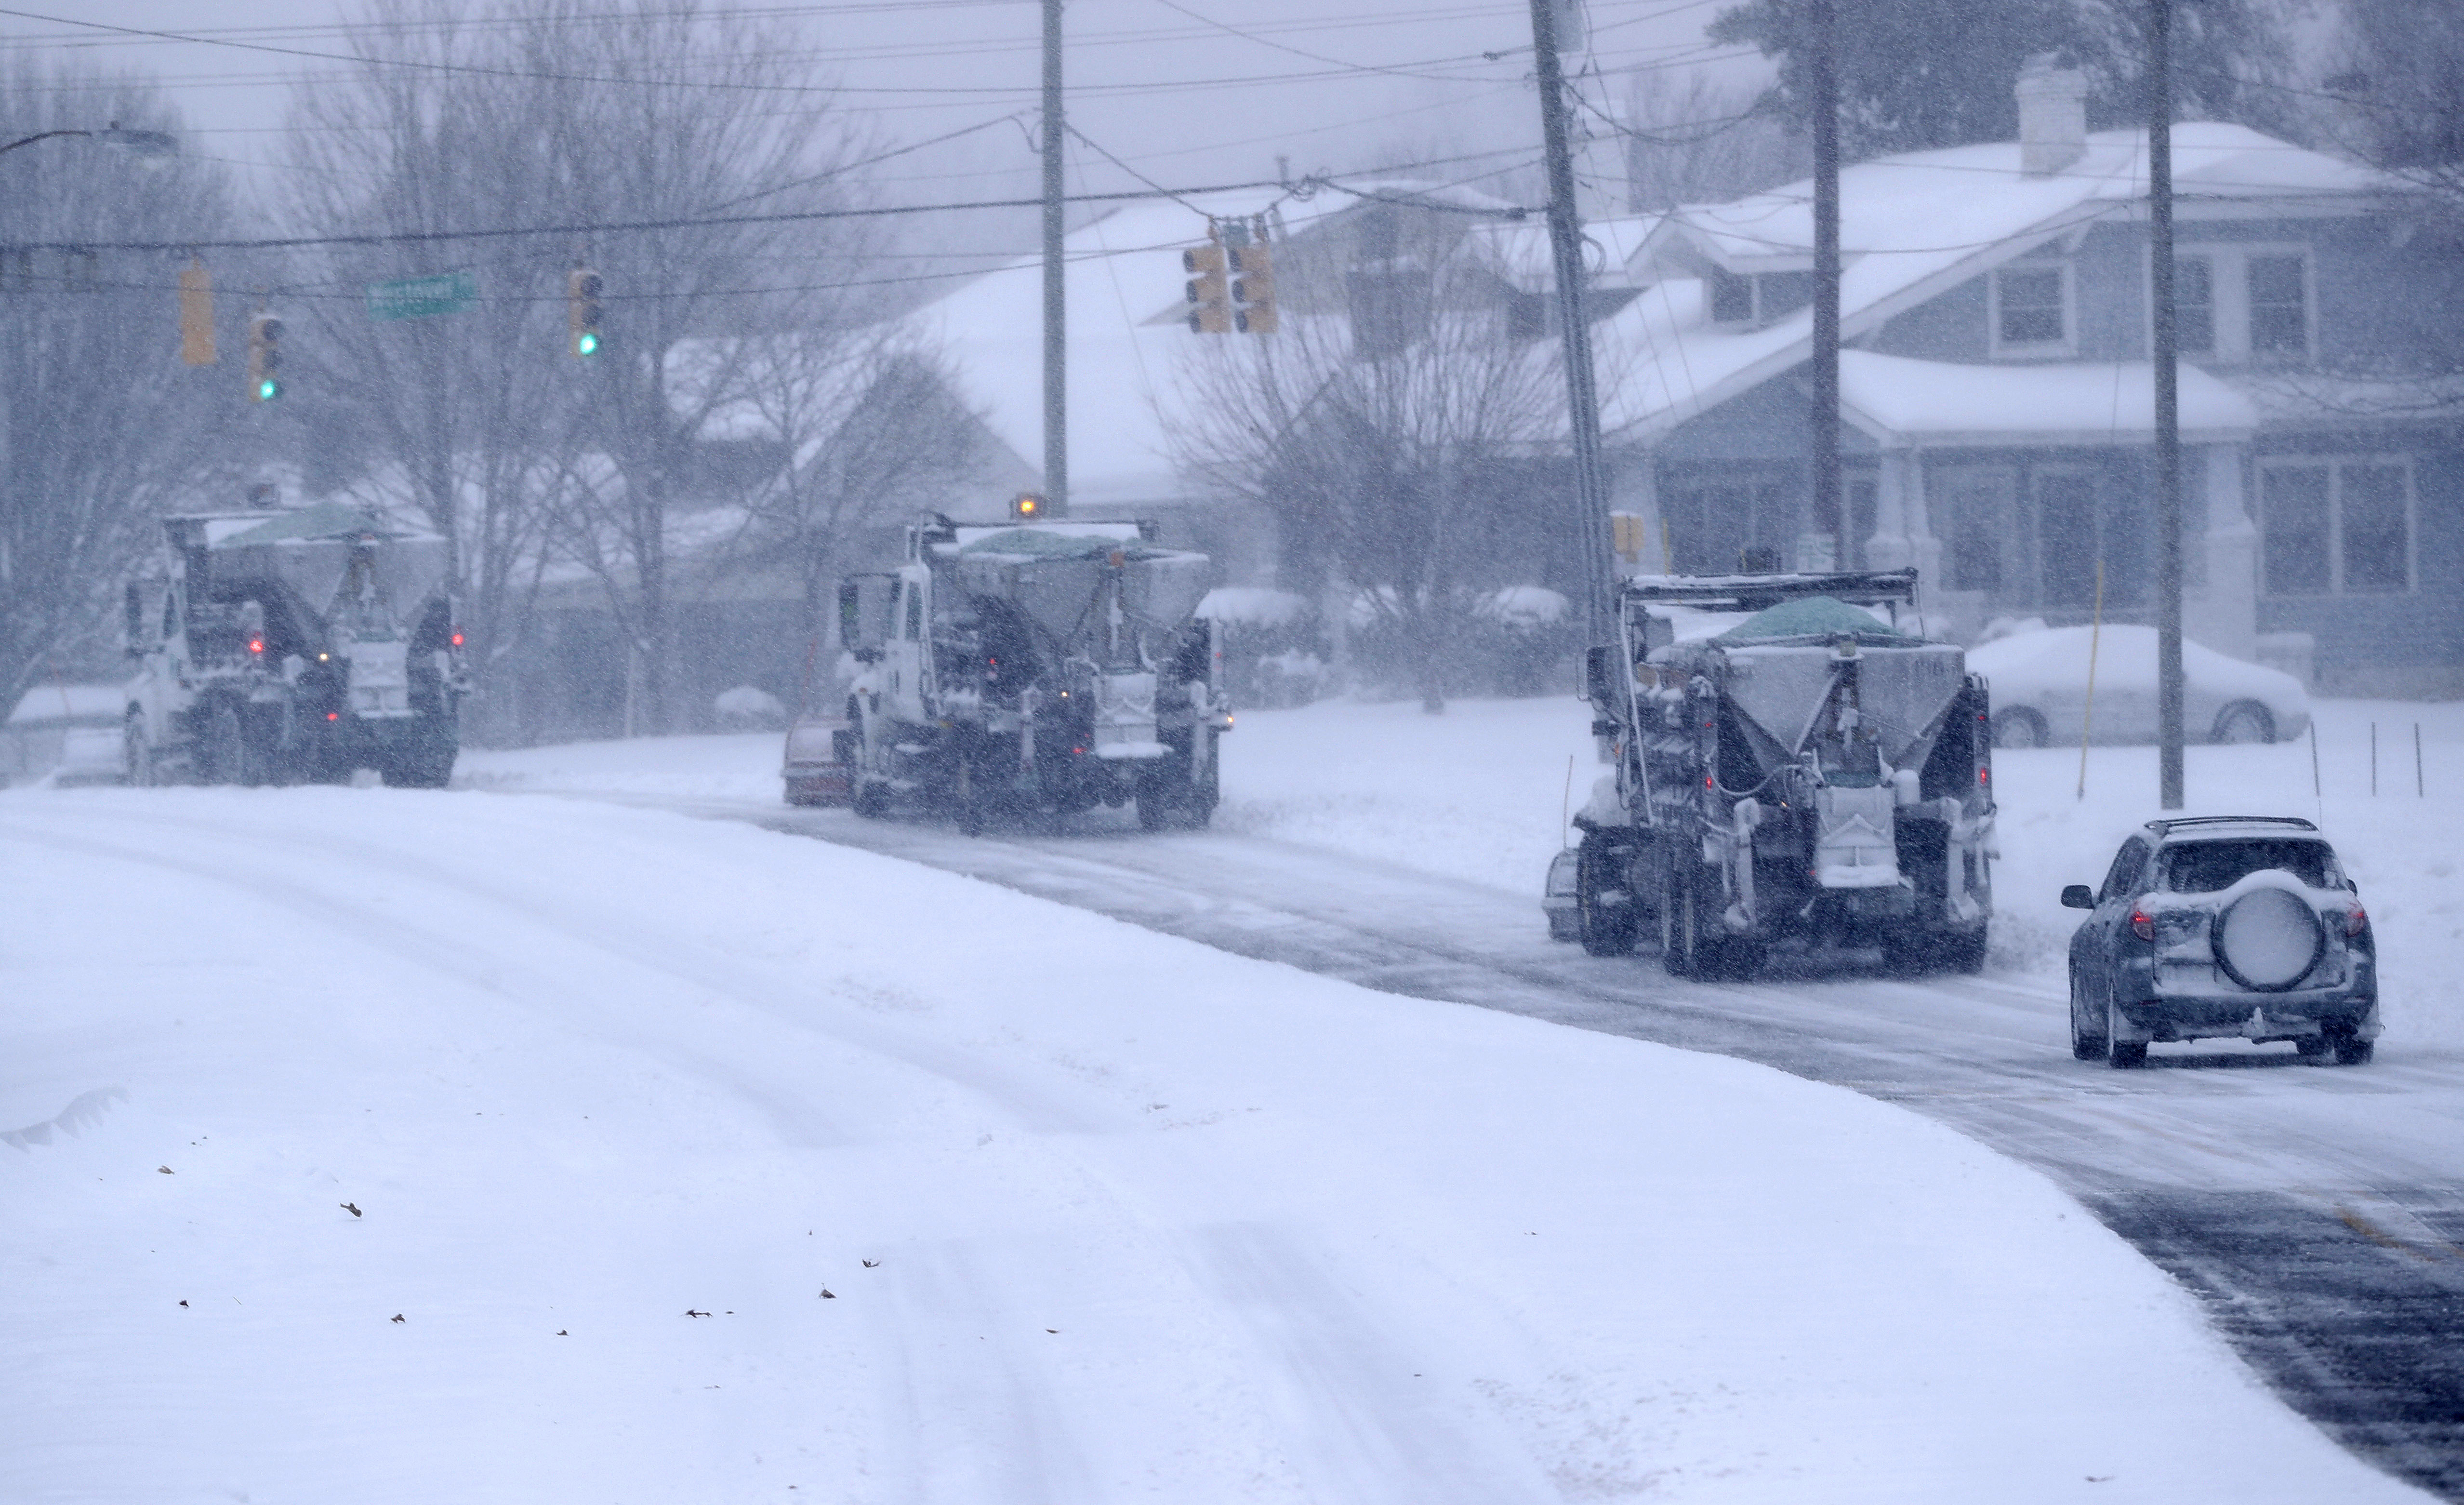 Southern states hit with snow, ice see roads clogged by